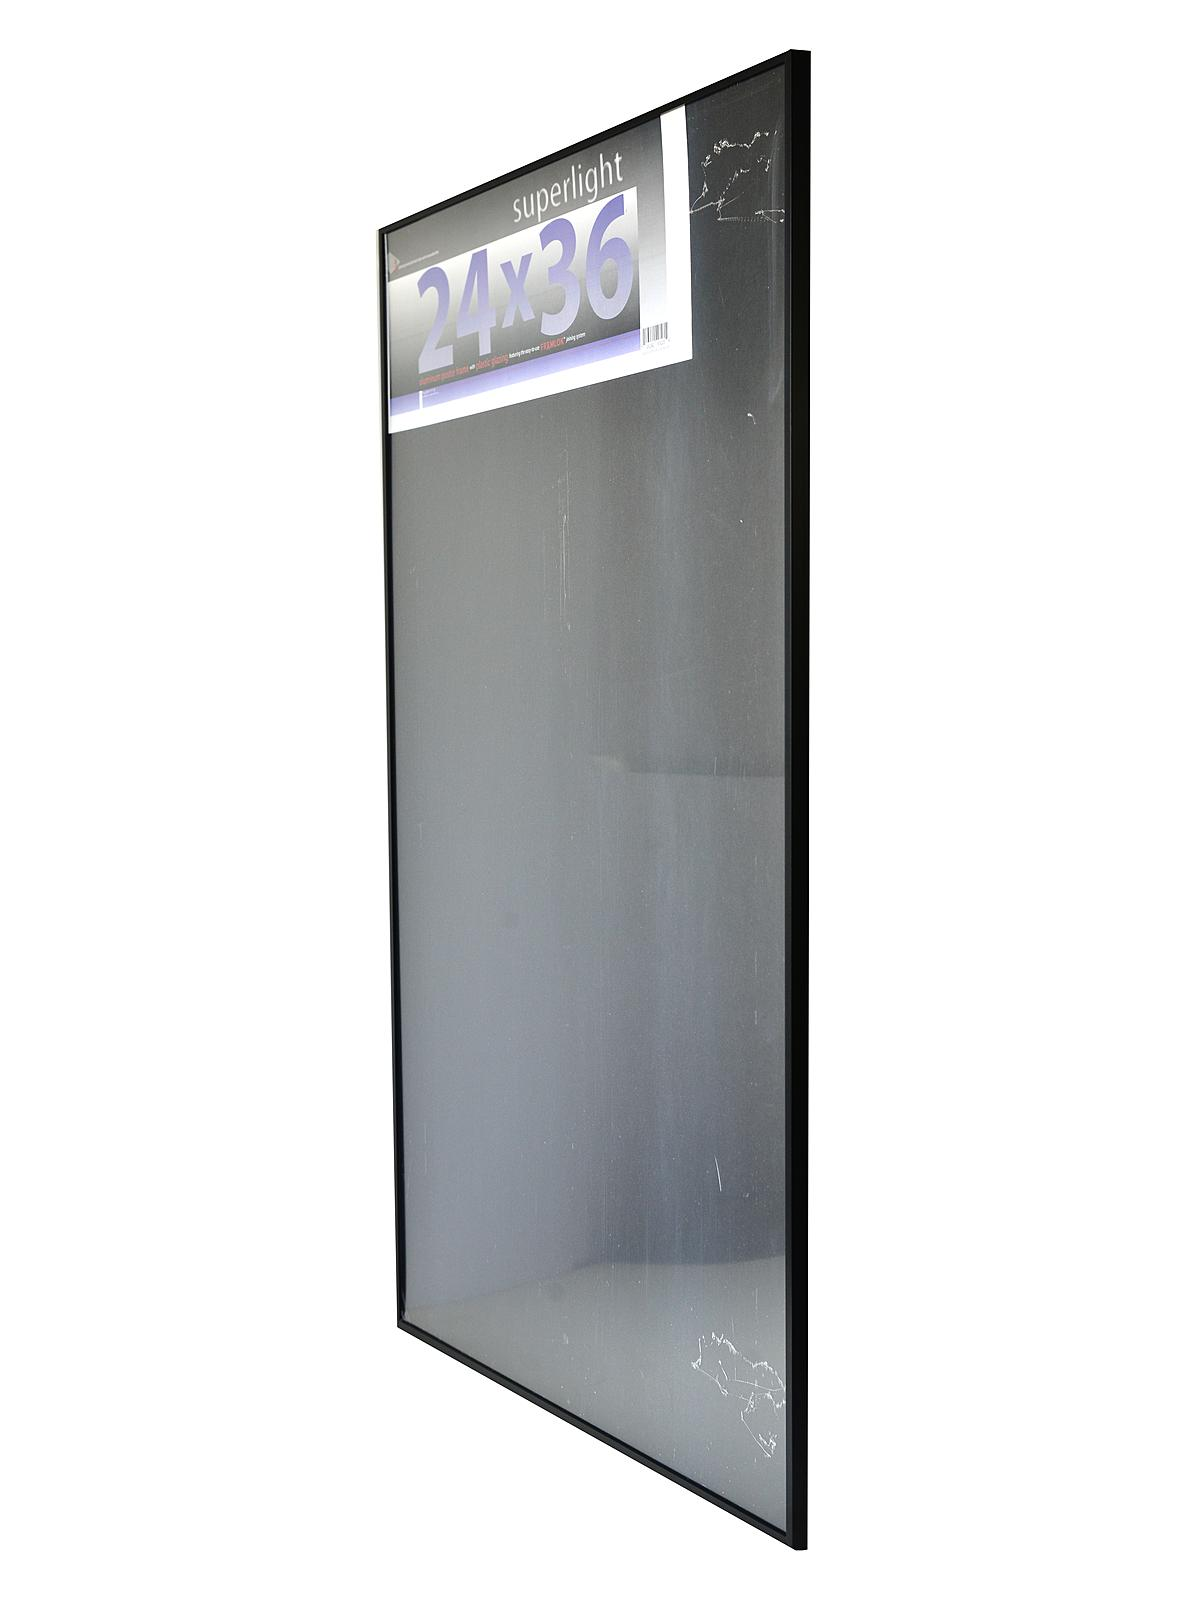 24 in. x 36 in. 300125 $31.91 $27.22 15% Off $24.28 24% Off